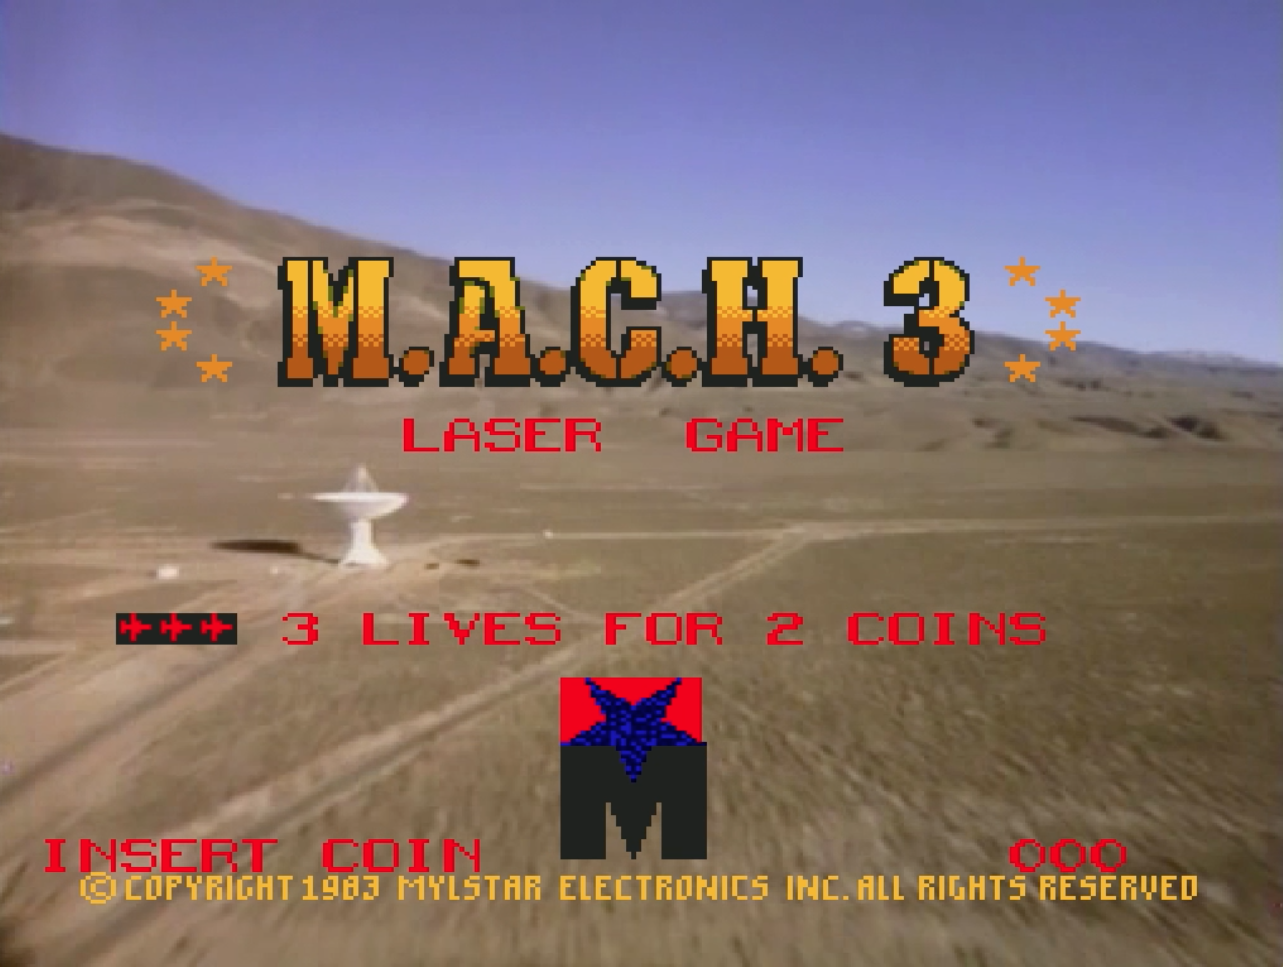 Title screen for M.A.C.H. 3, an arcade laserdisc game by Mylstar 1983